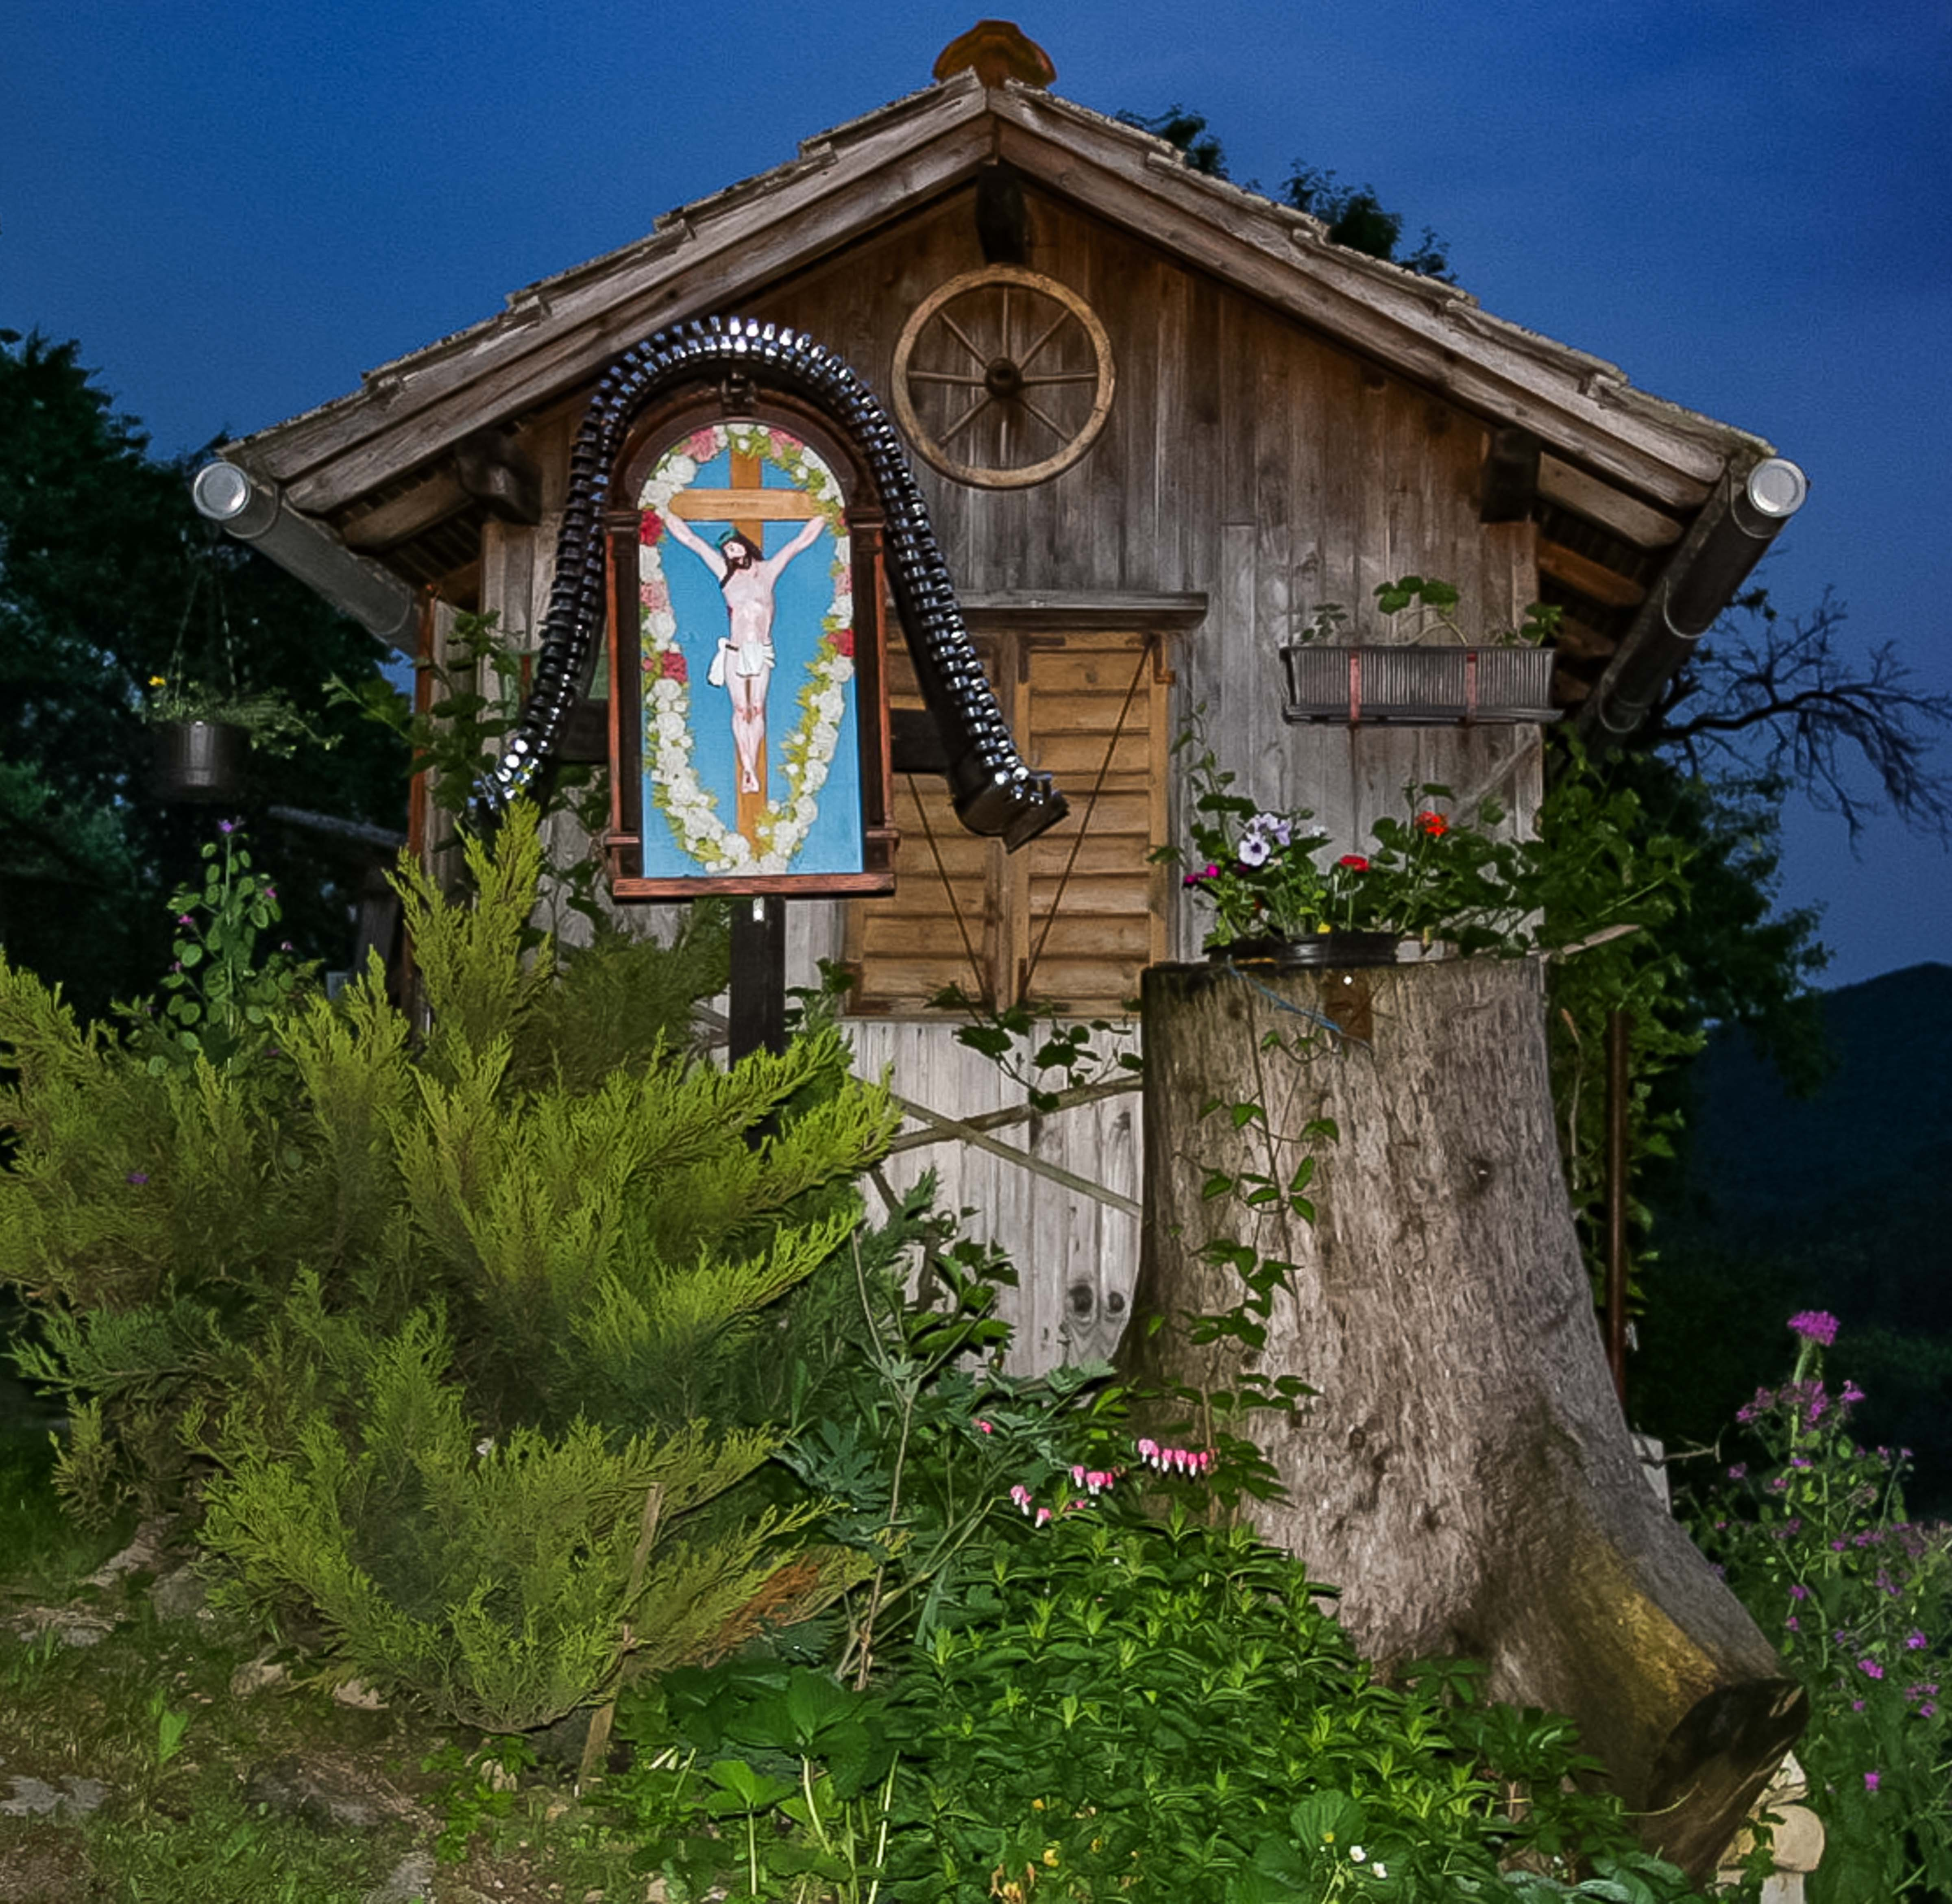 Slovenia, Dobrna Prov, Unusual House With Icon, 2006, IMG 8076